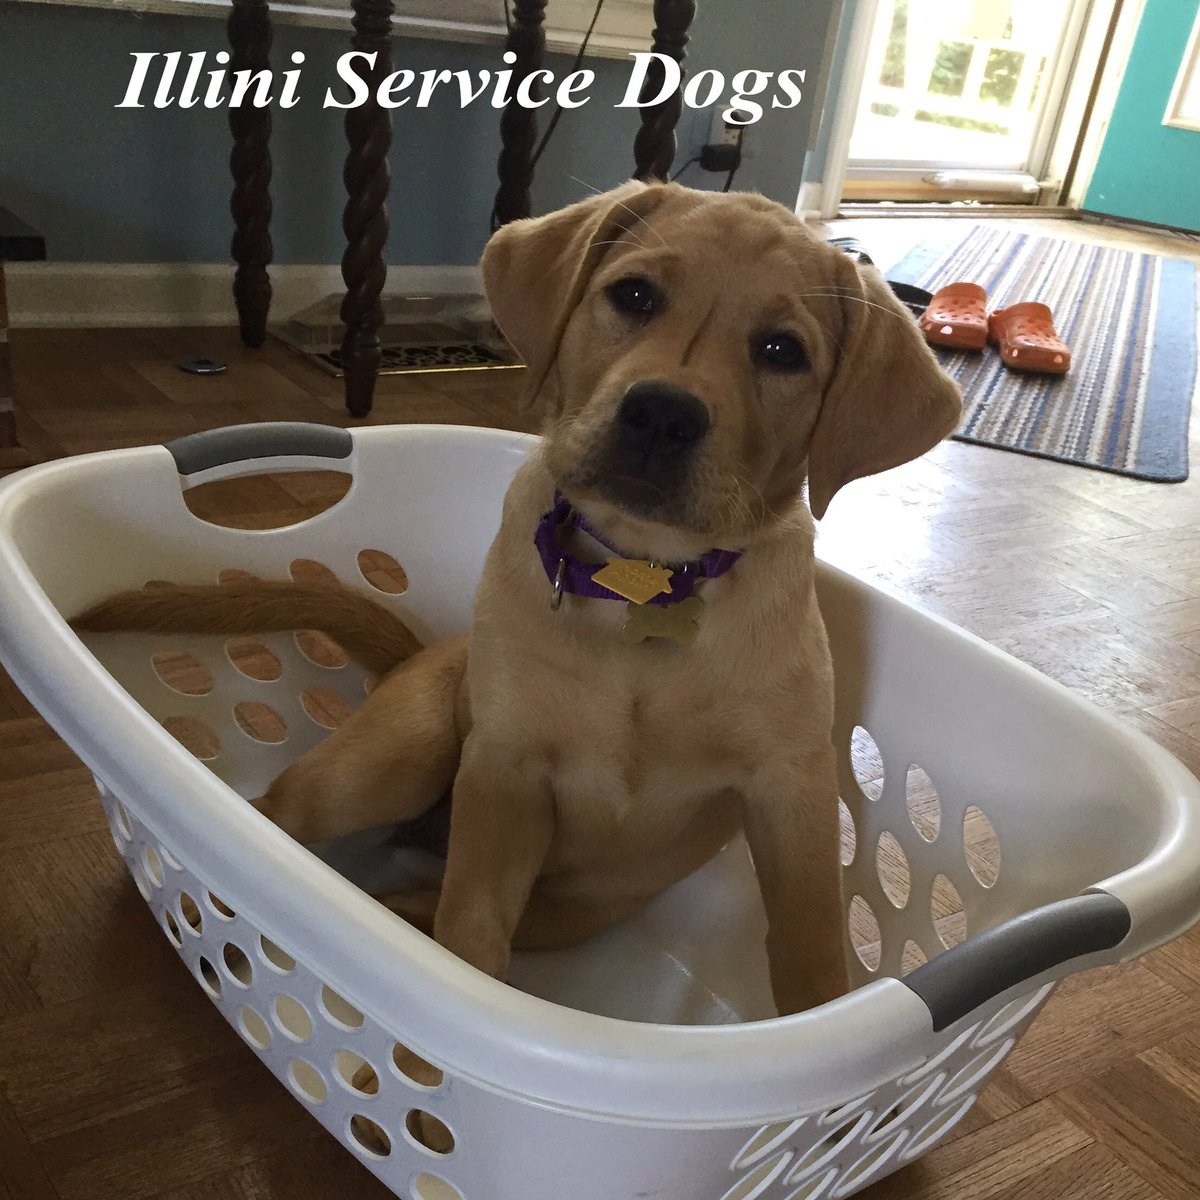 One day, Alma will be able to help out with the laundry. But for now, she&#39;s just going to sit back and watch! #illiniservicedogs #alma <br>http://pic.twitter.com/b1oNlbvLQx